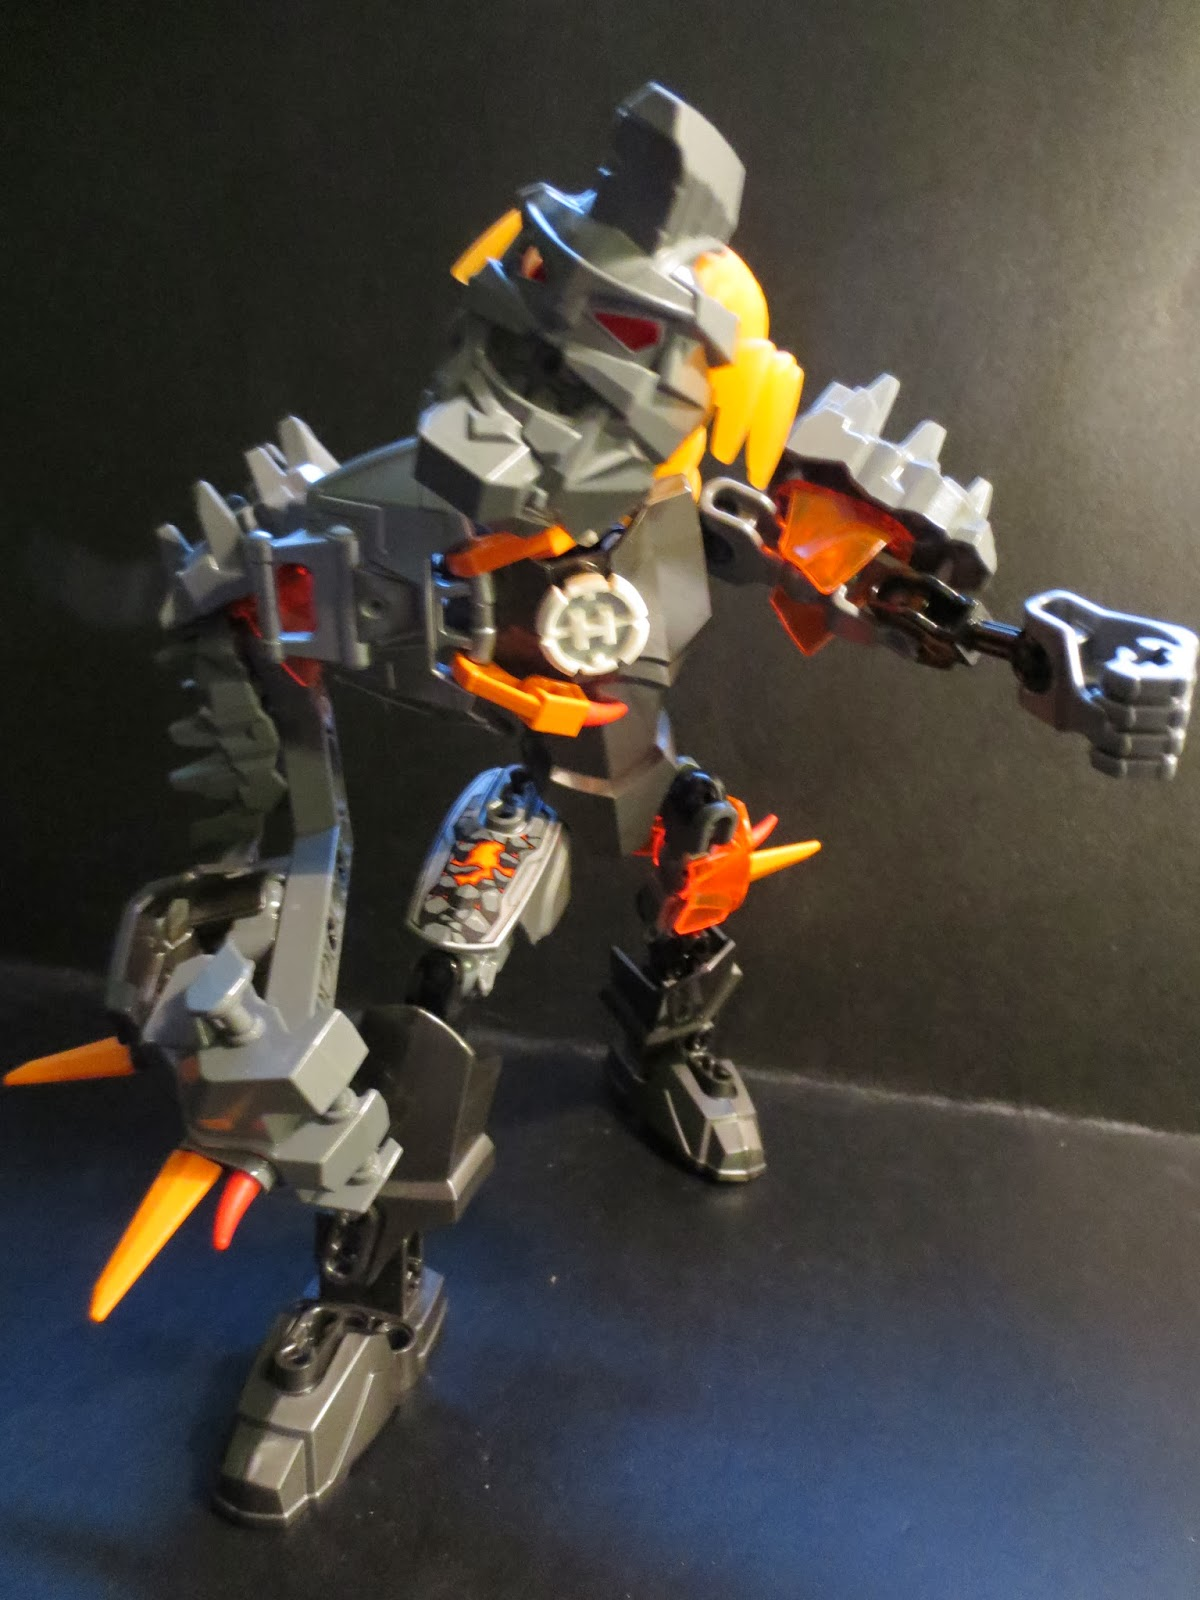 The Epic Review Lego Review Bruizer From Hero Factory Brain